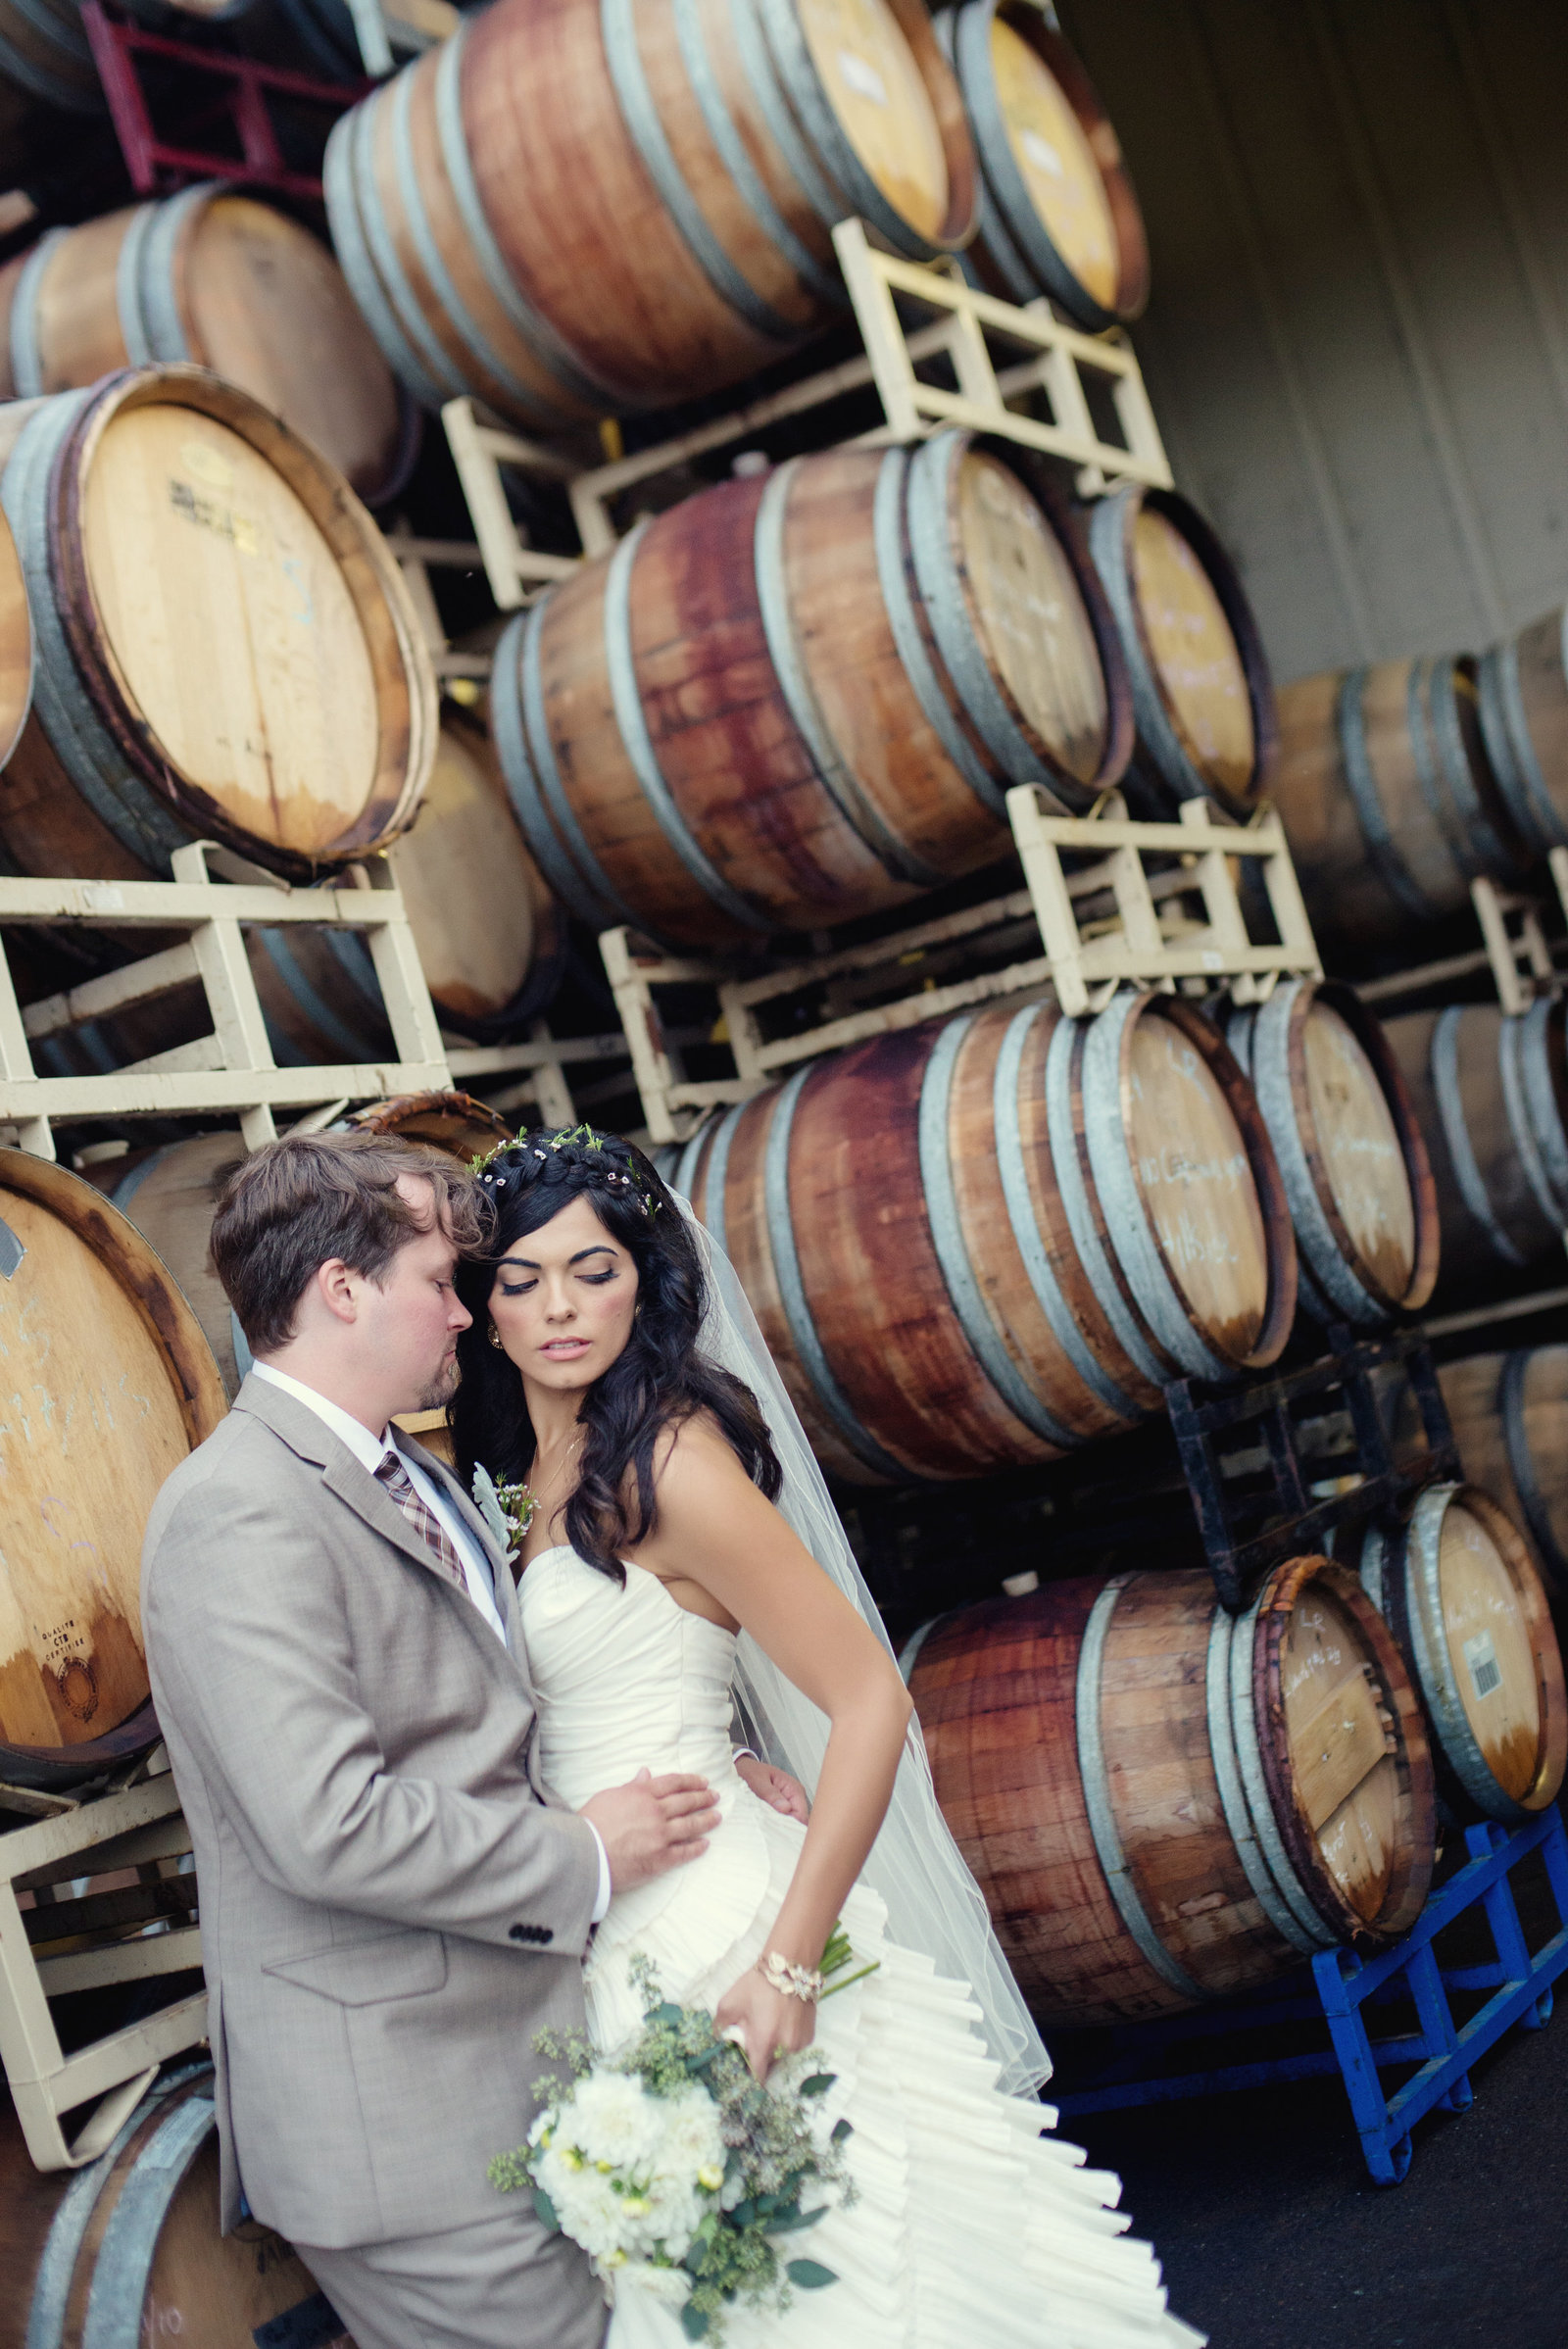 Crystal Genes Photography LAUREL RIDGE WINERY WEDDING_130921-191535